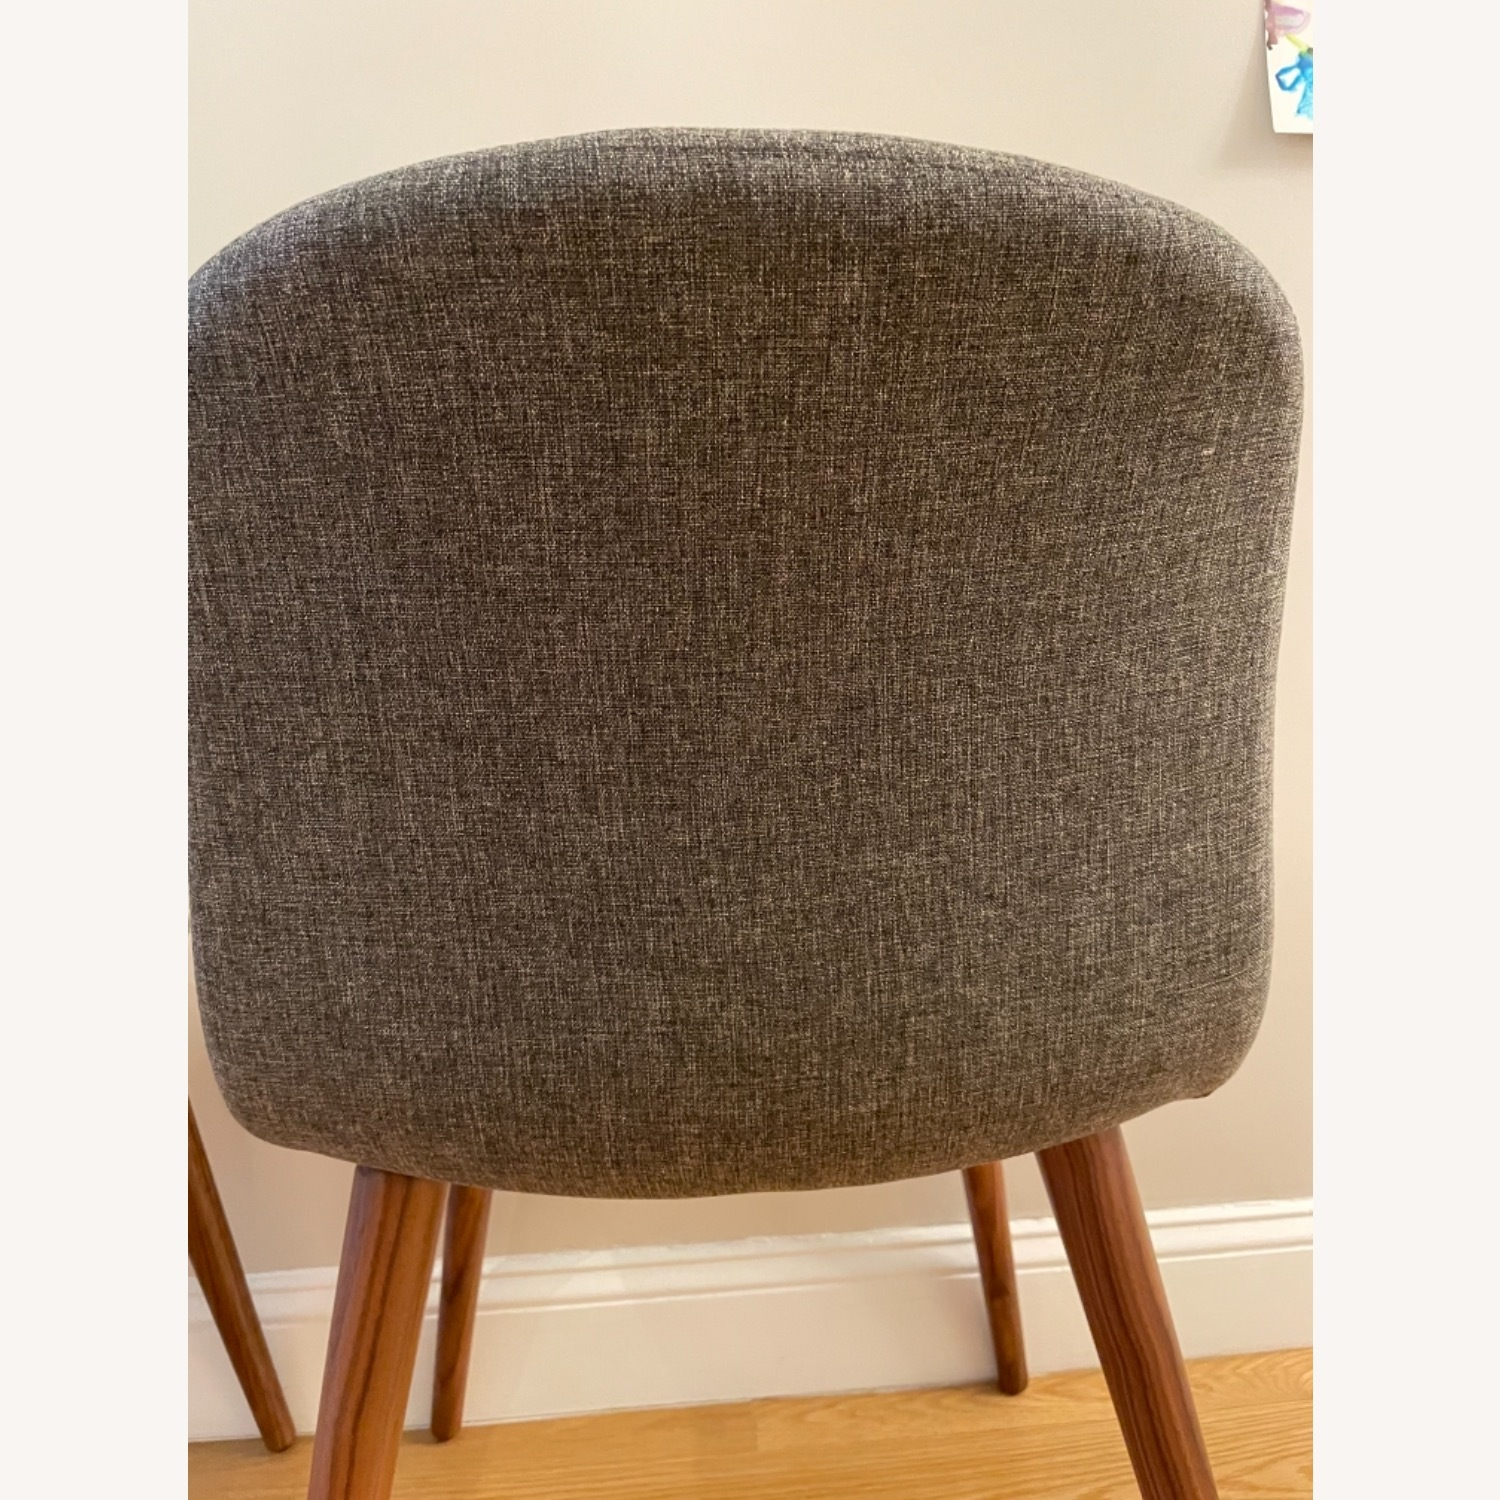 Design Within Reach Bacco Chairs - image-9